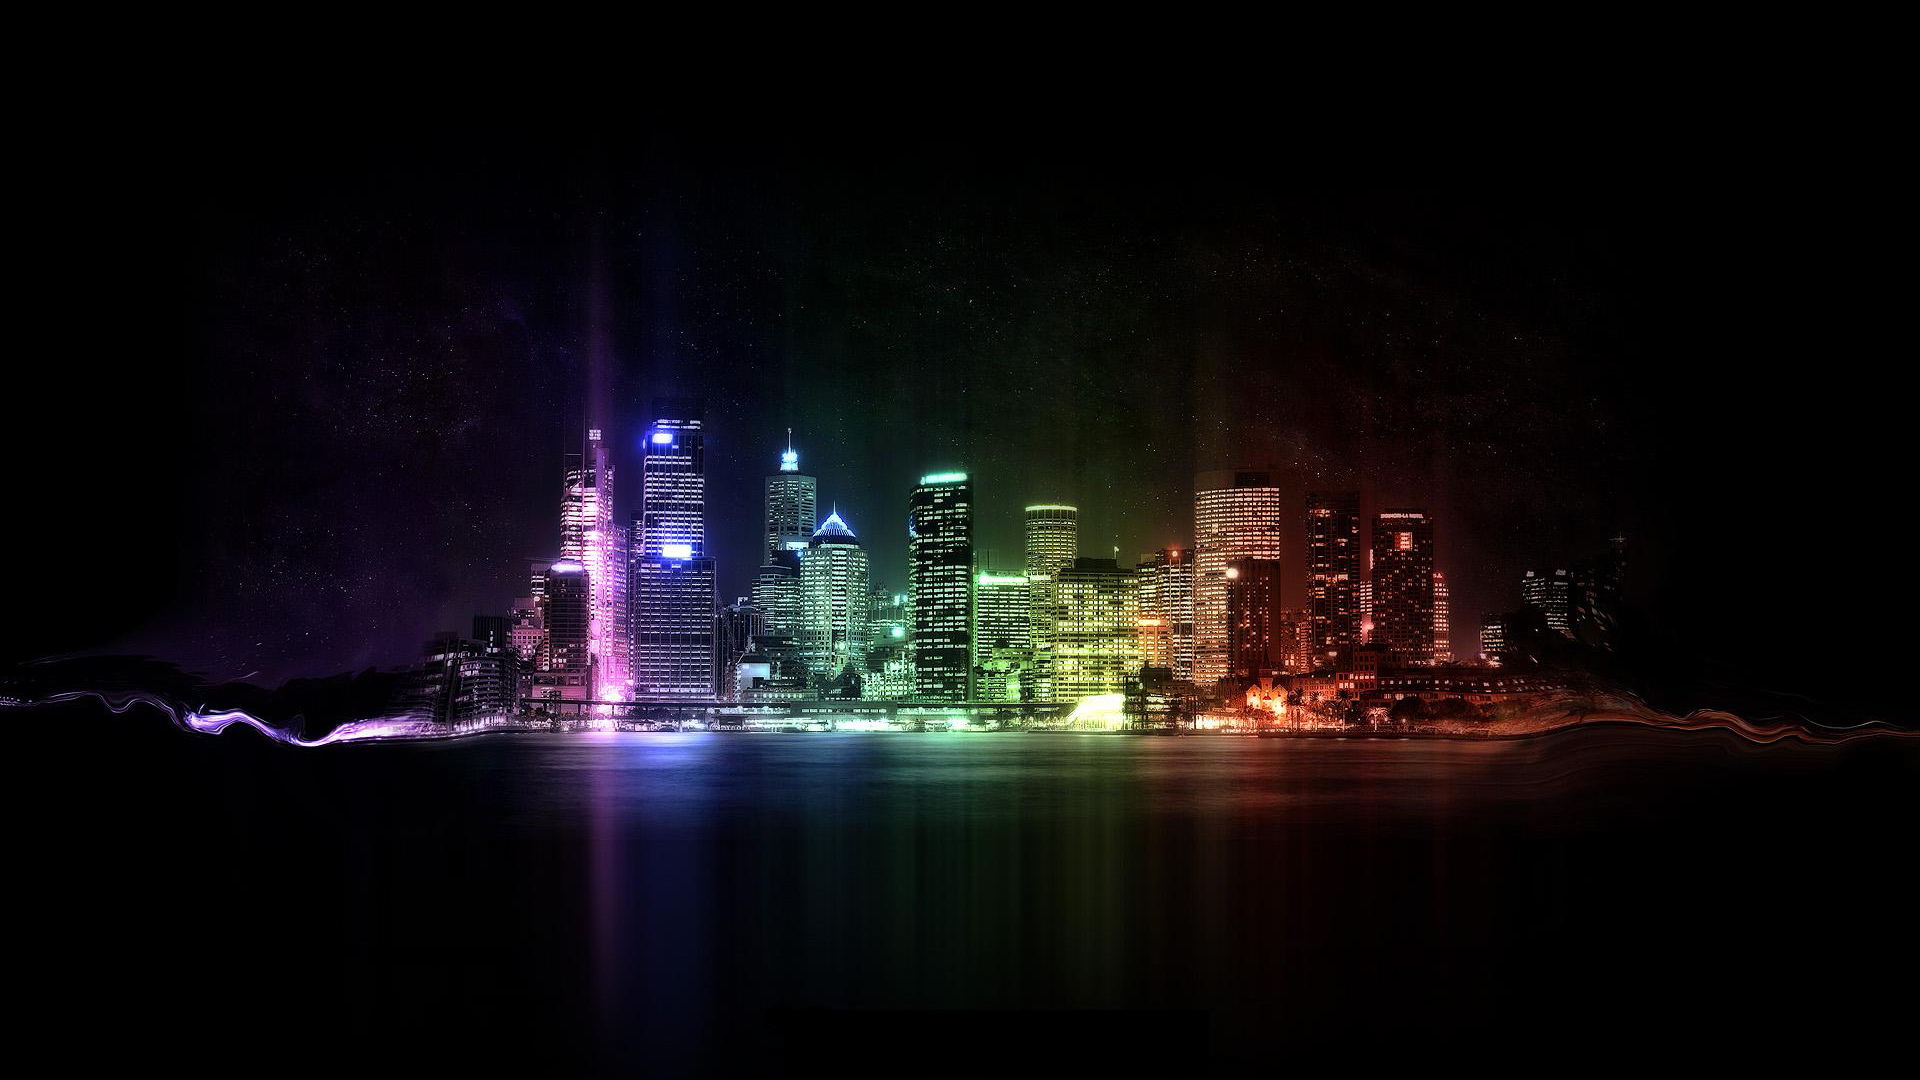 Colorful city lights wallpaper 24308 1920x1080 px for 24308